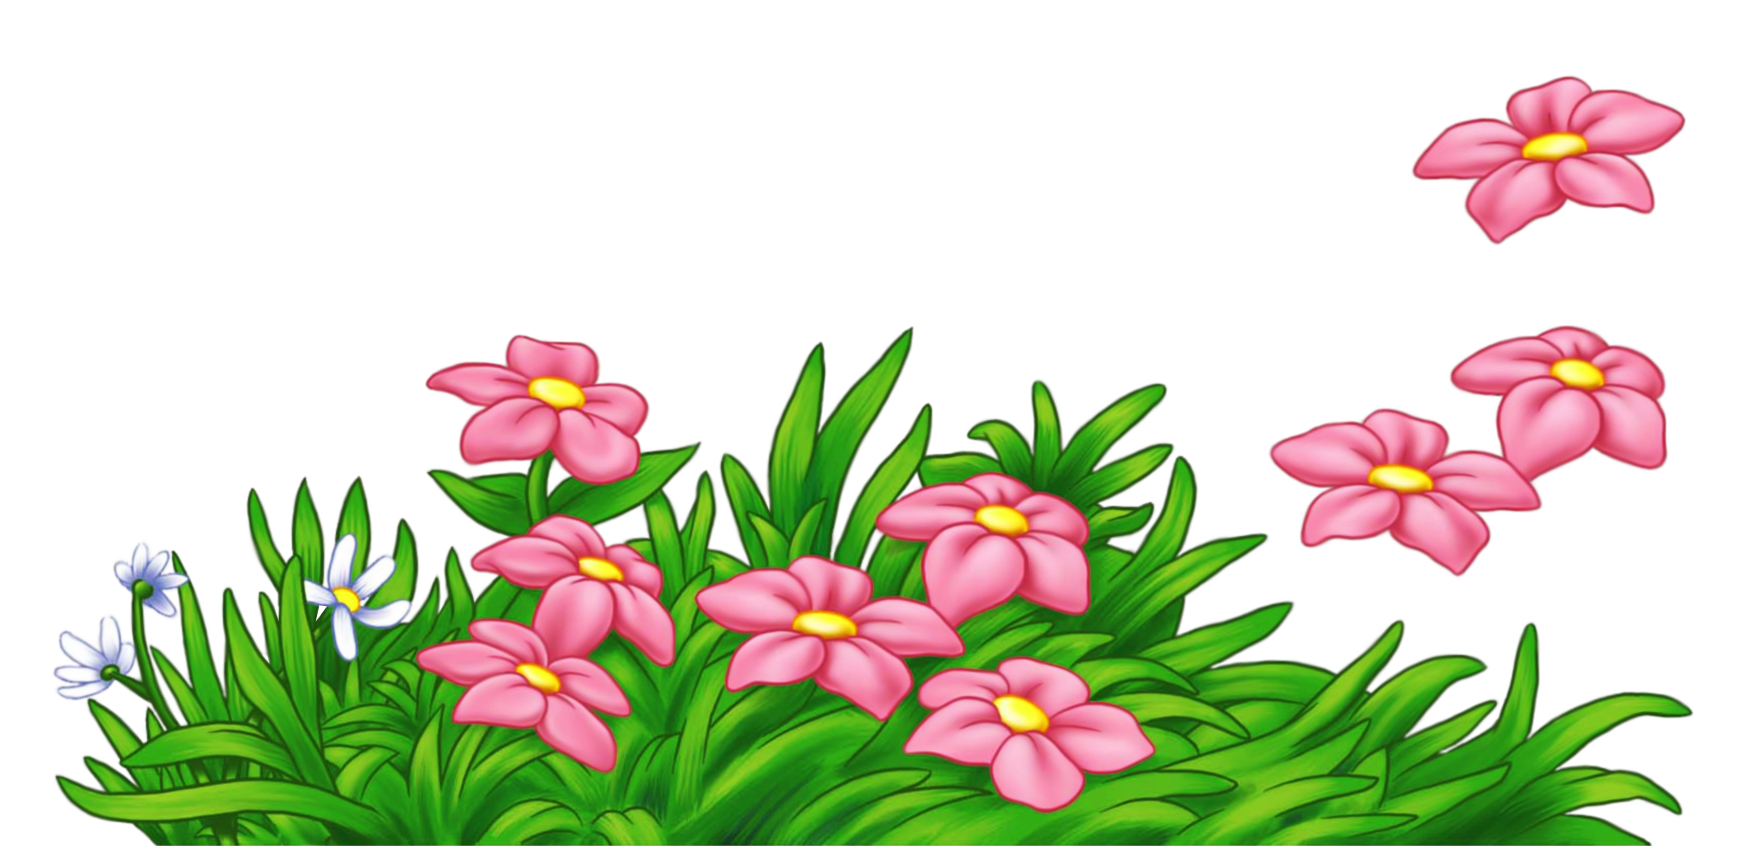 1740x846 Grass With Flowers Border Clipart